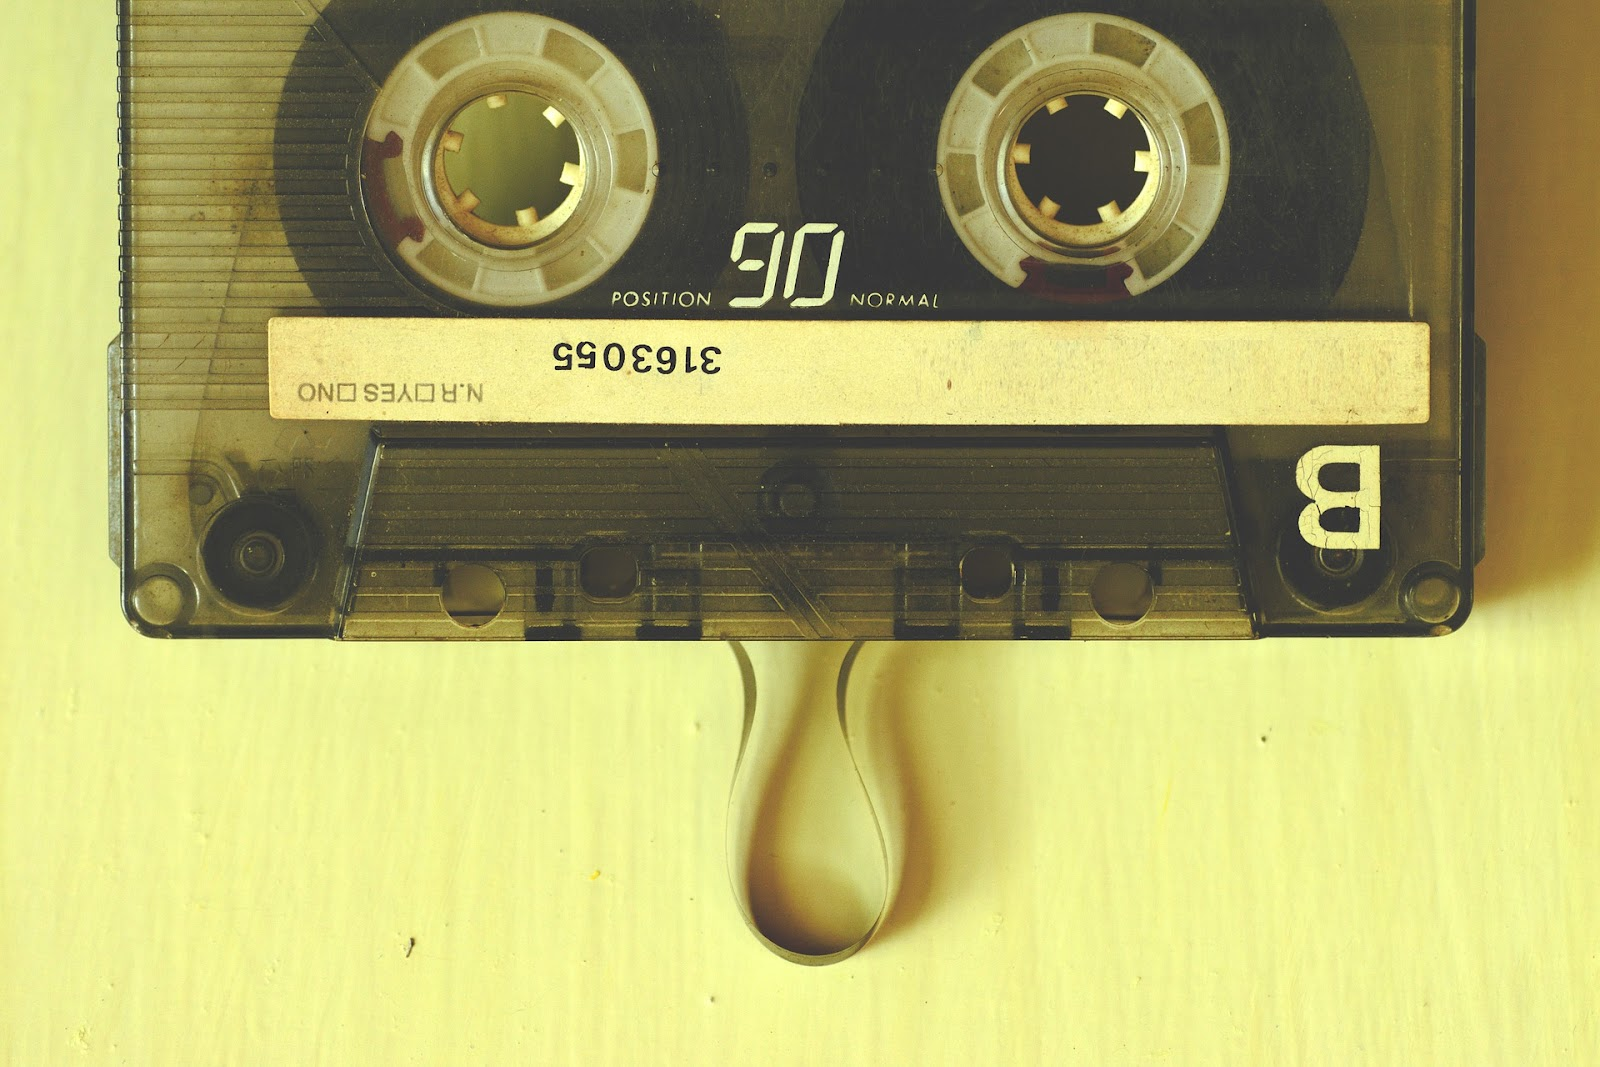 Cassette tape with some of the tape pulled out